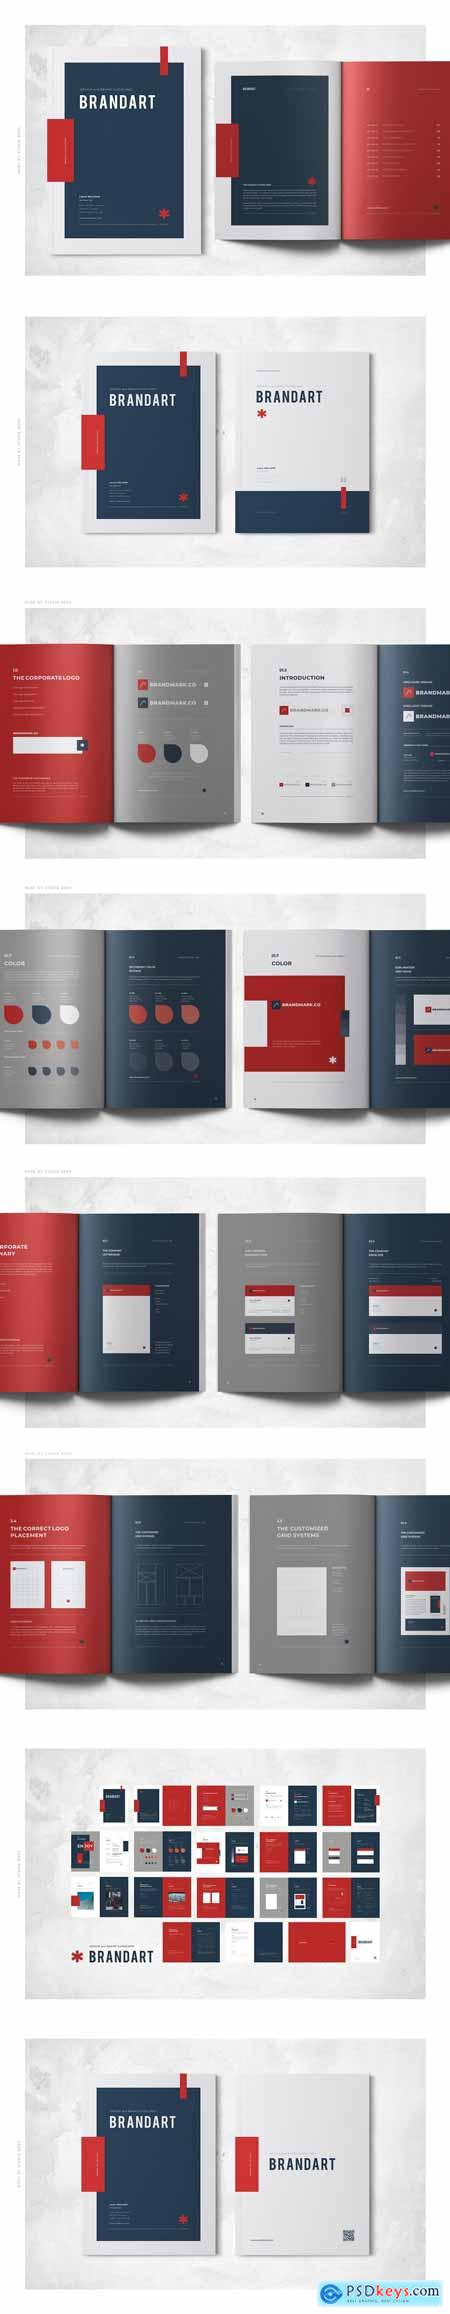 Brand Guidelines 3361397